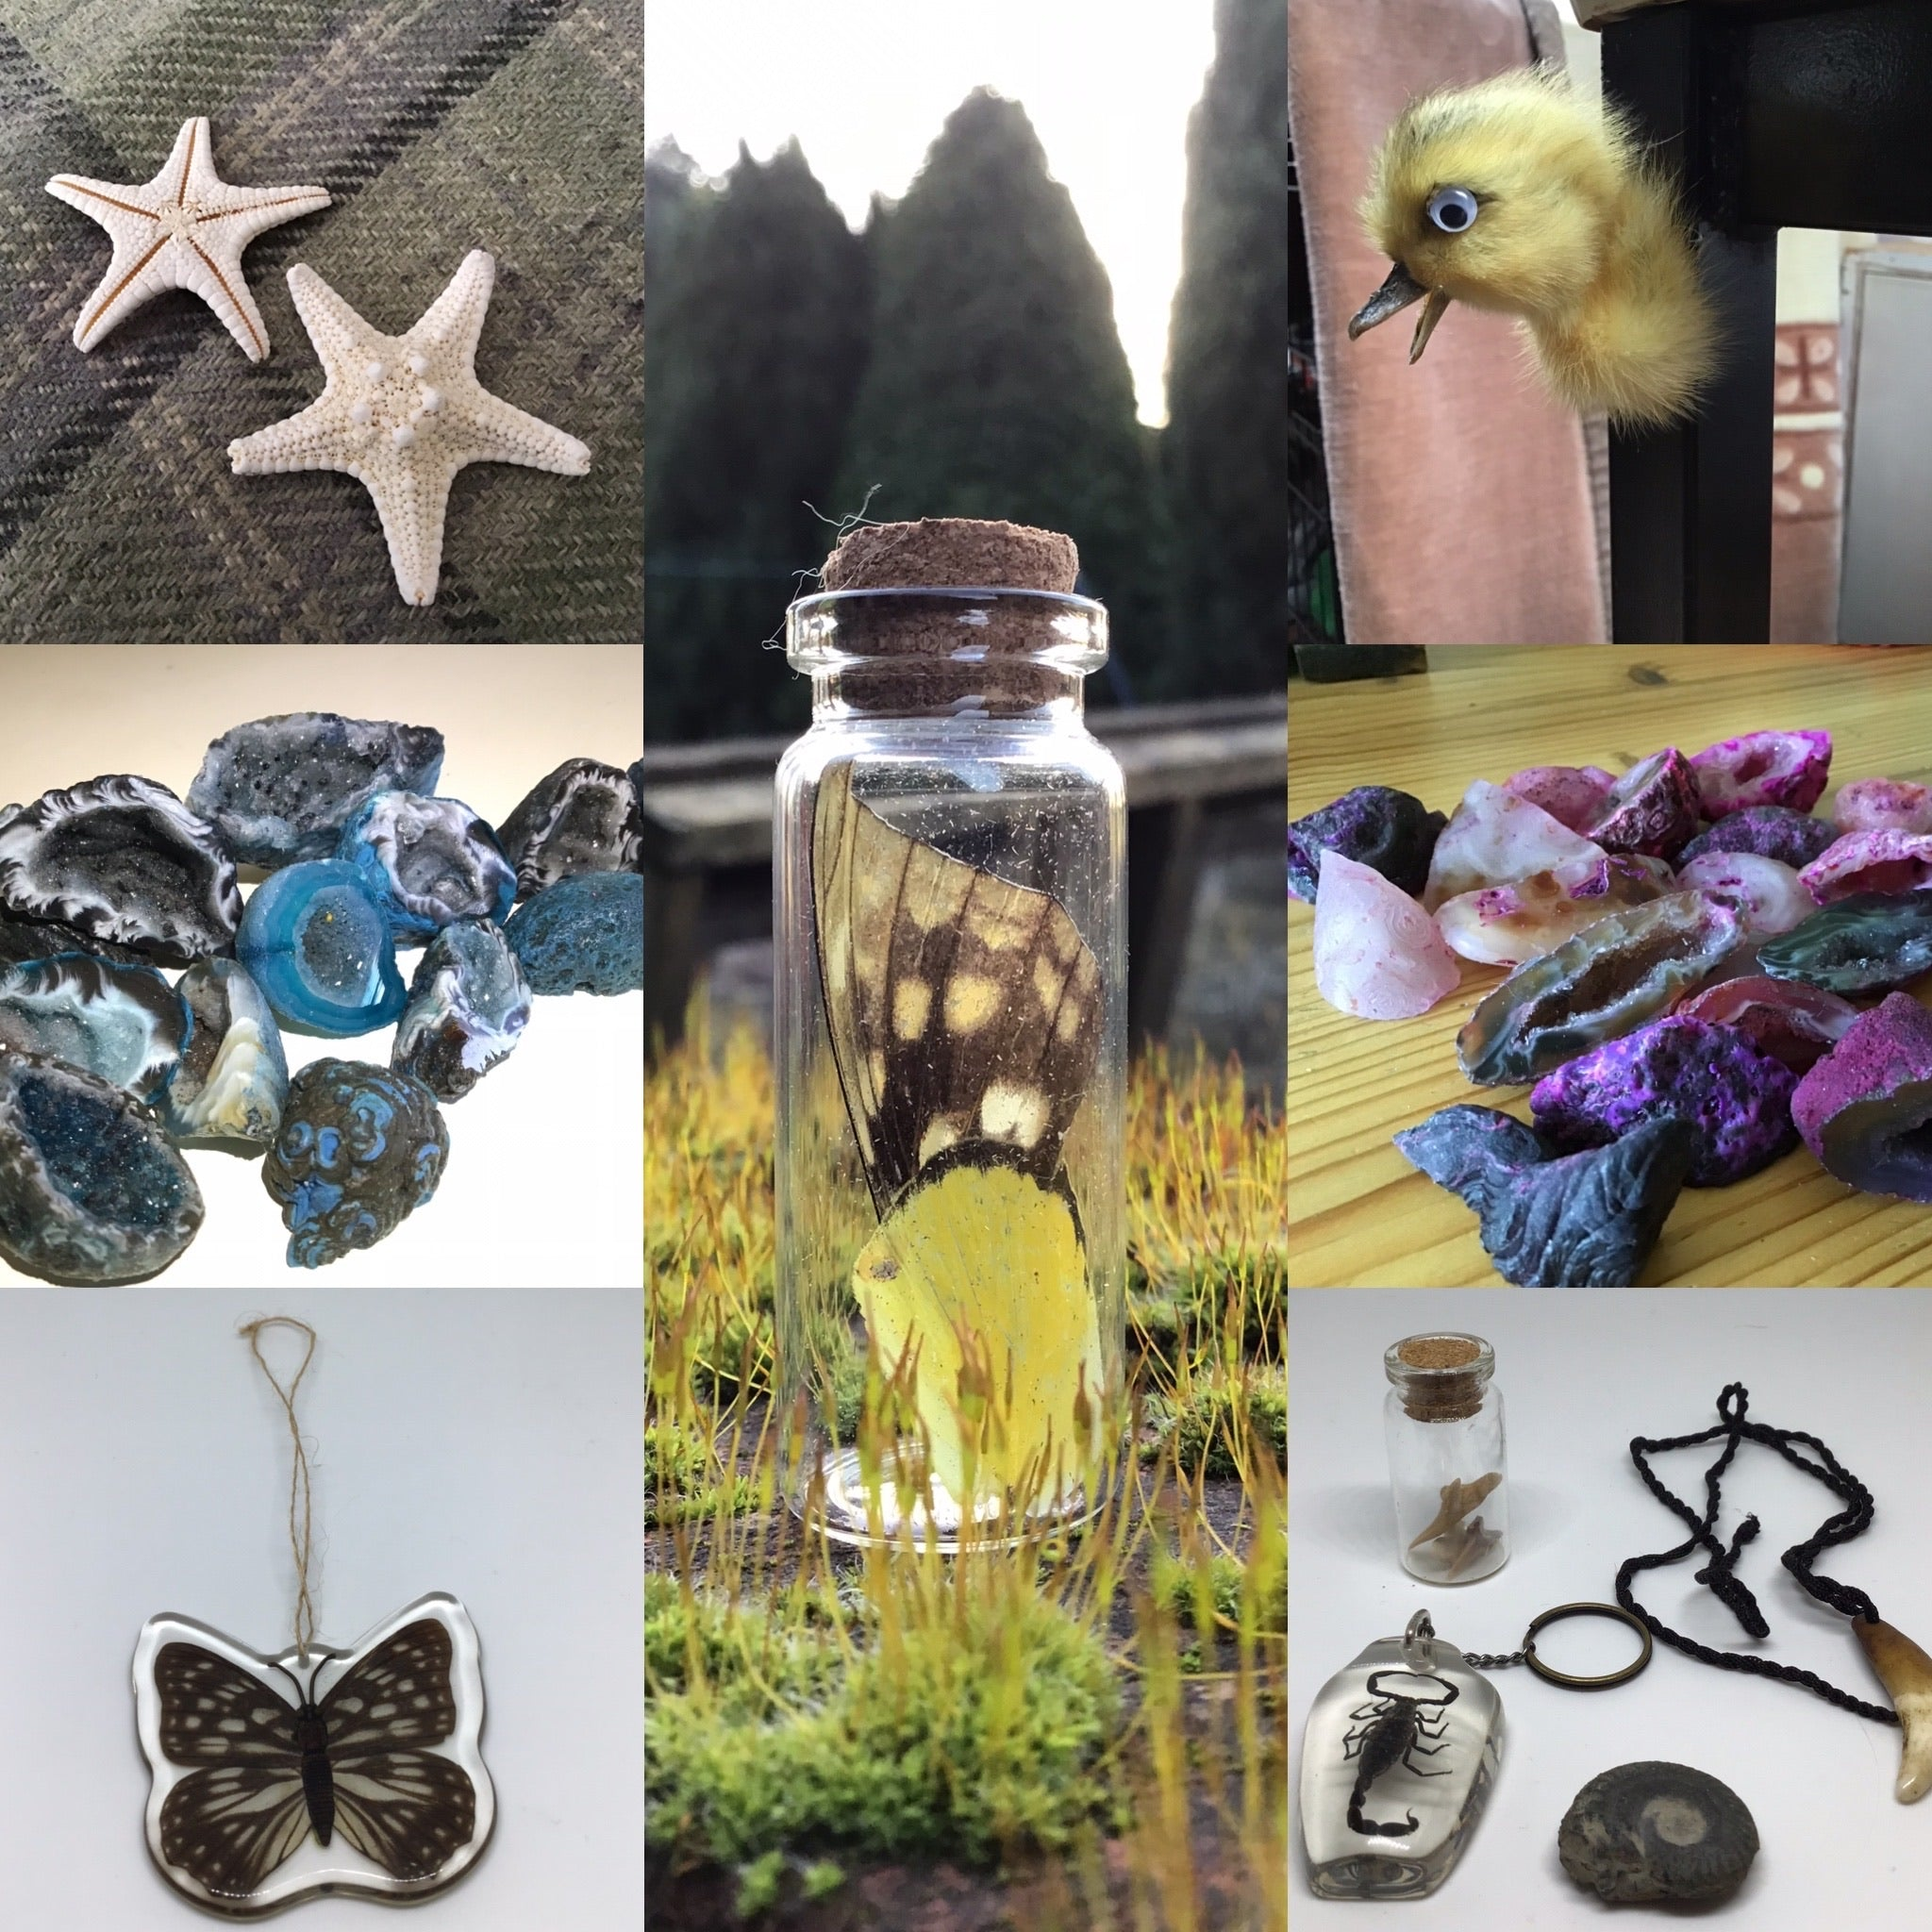 Oddities Starter Kit - A random selection of smaller Oddities